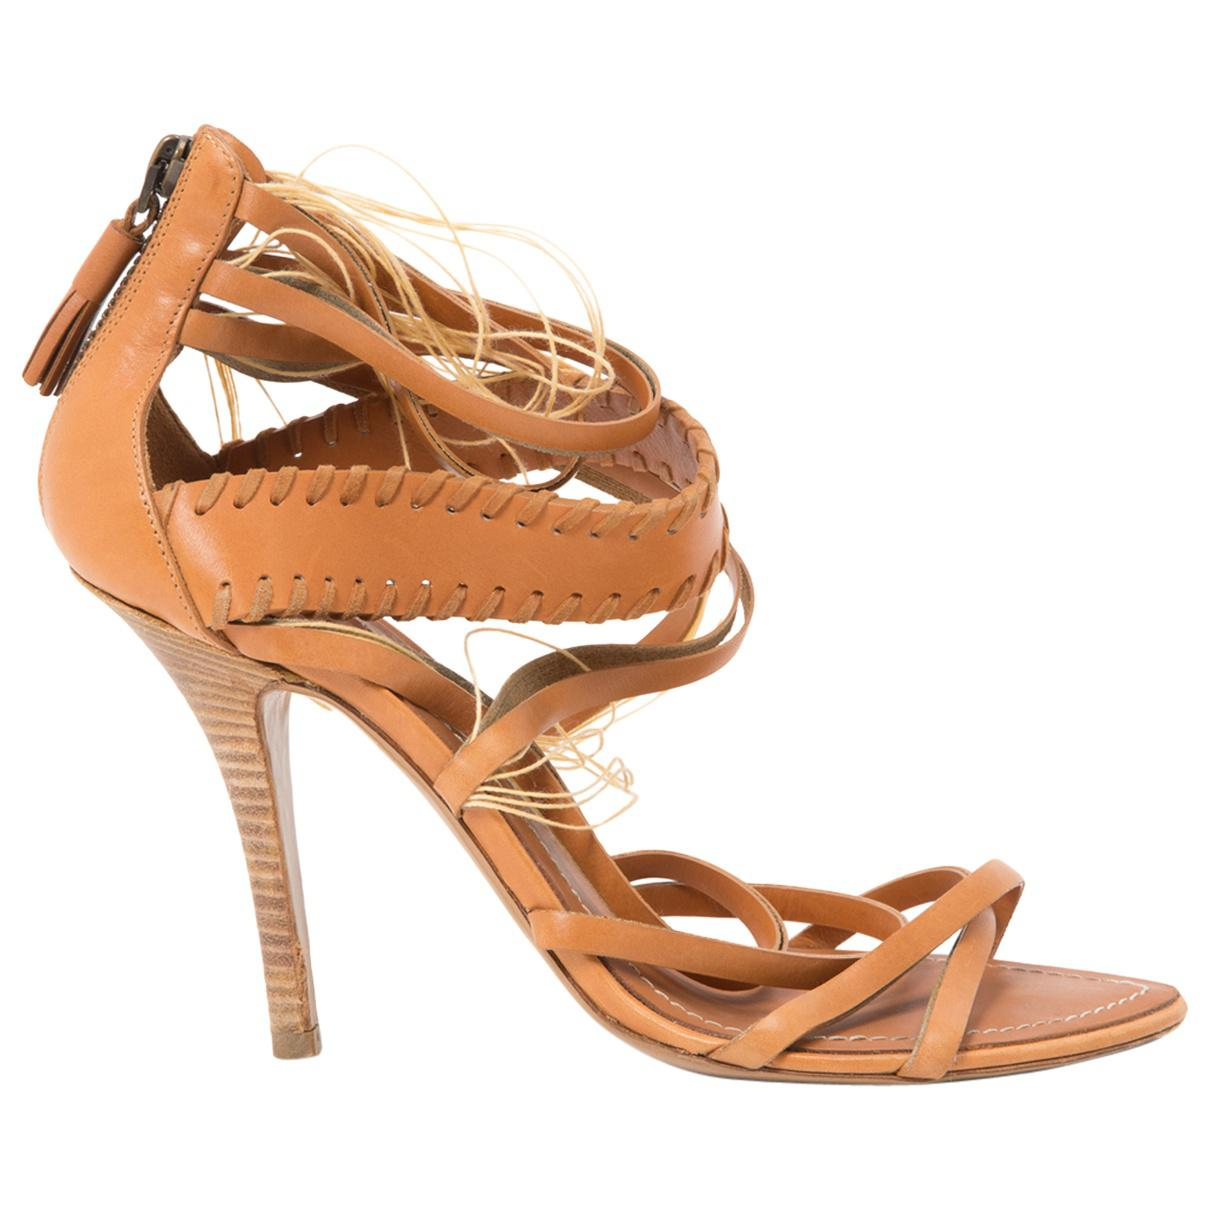 Pre-owned - Patent leather sandals Emilio Pucci RsJWg